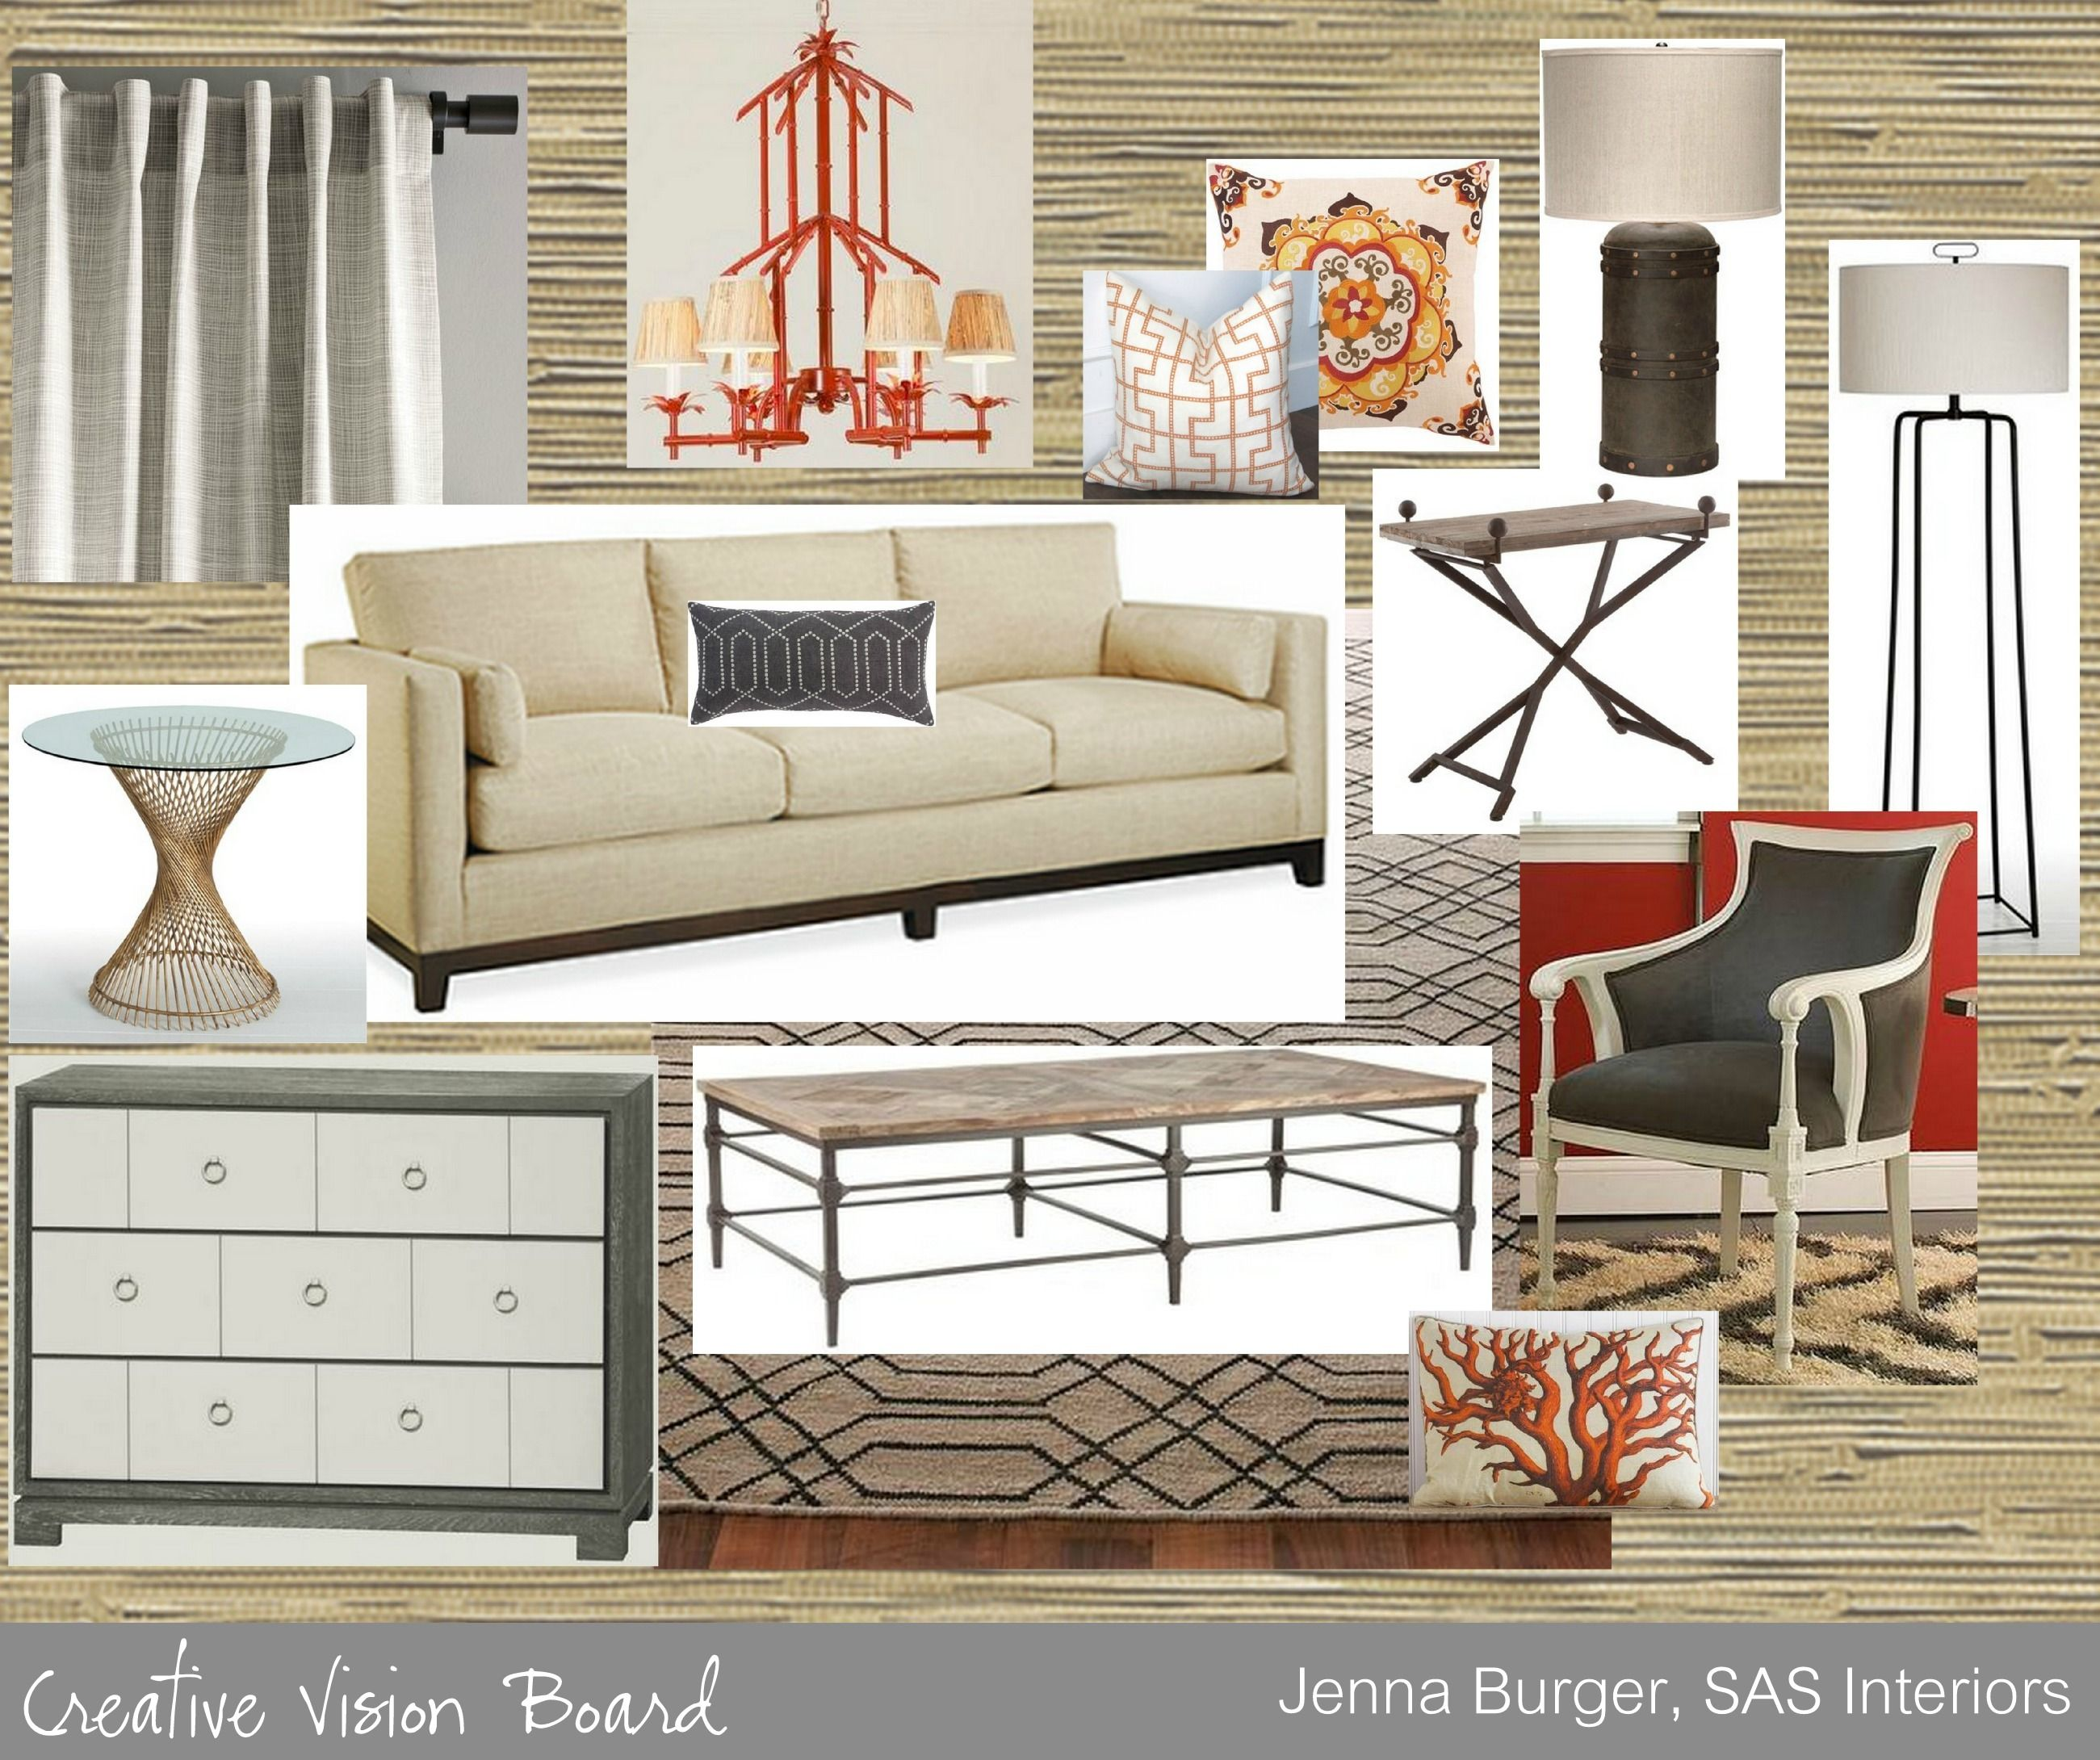 Creative Vision Board   Red Hot Eclectic Living Room By @Jenna_Burger,  Www.sasinteriors